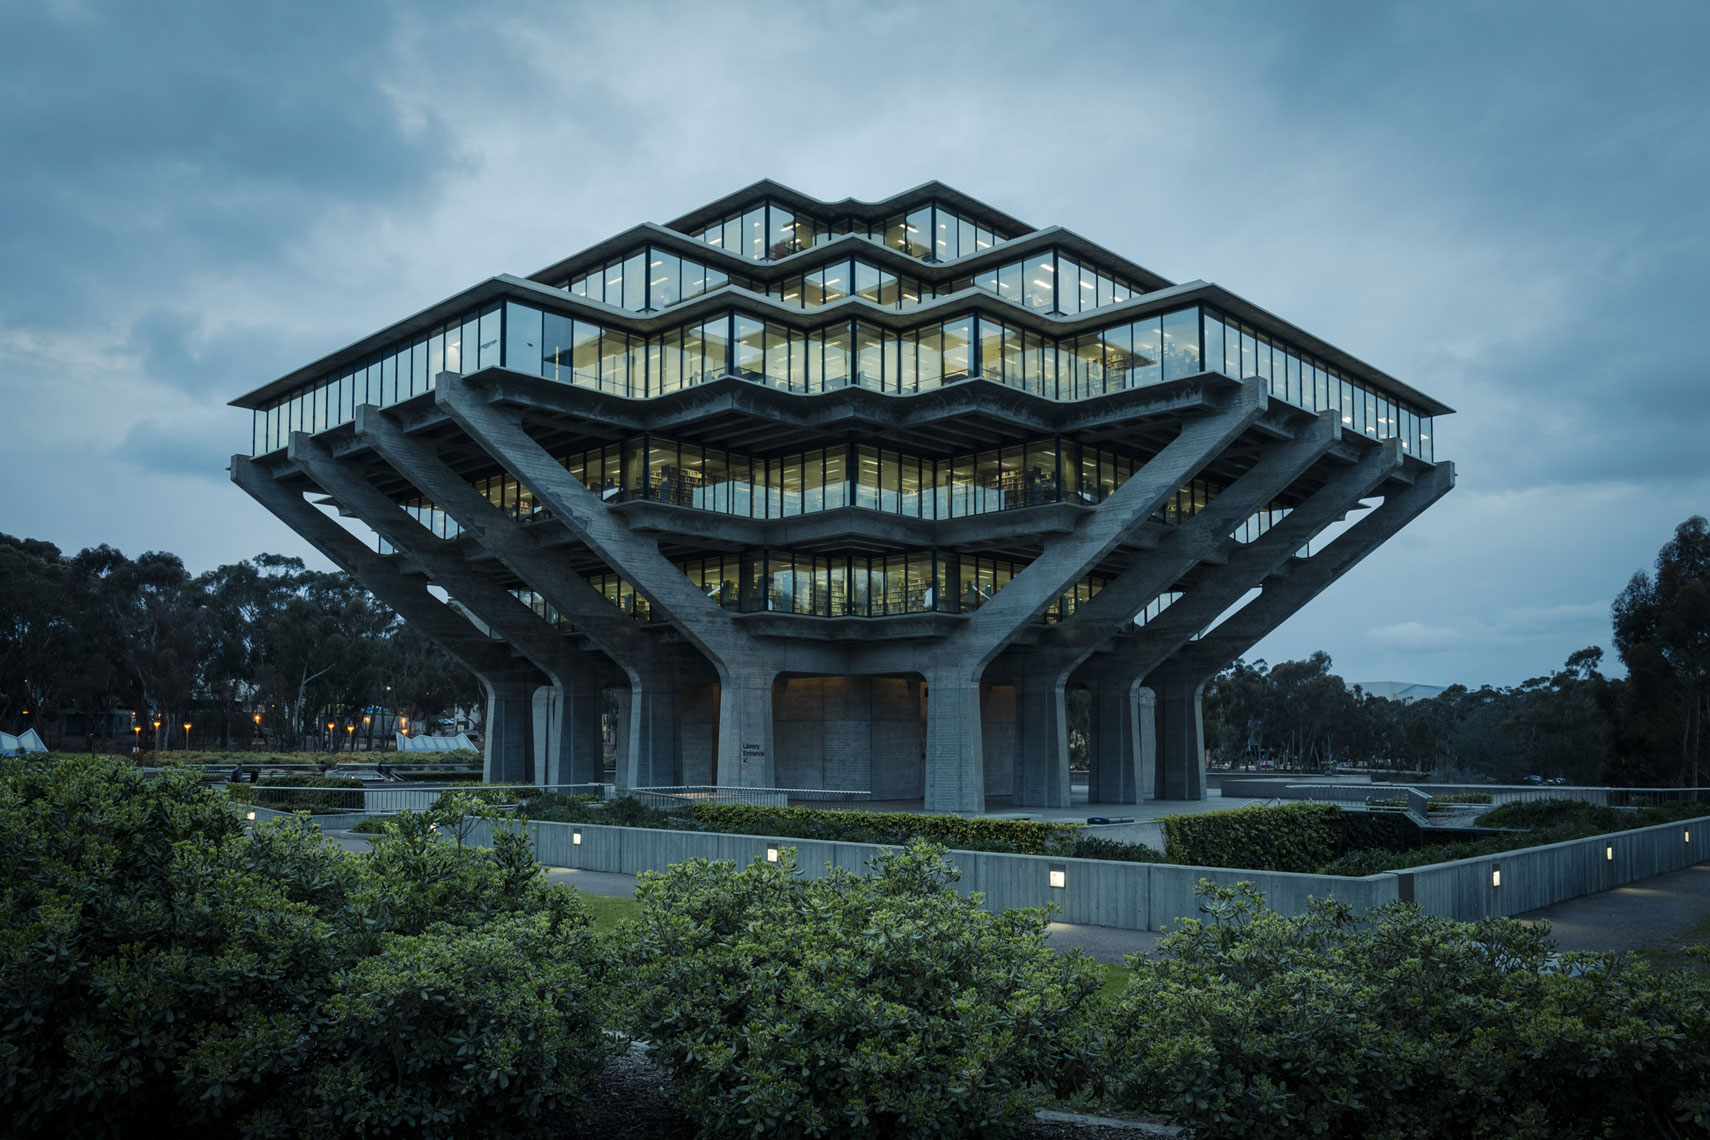 jeff-green-geisel-library-ucsd-la-jolla-exterior-architecture